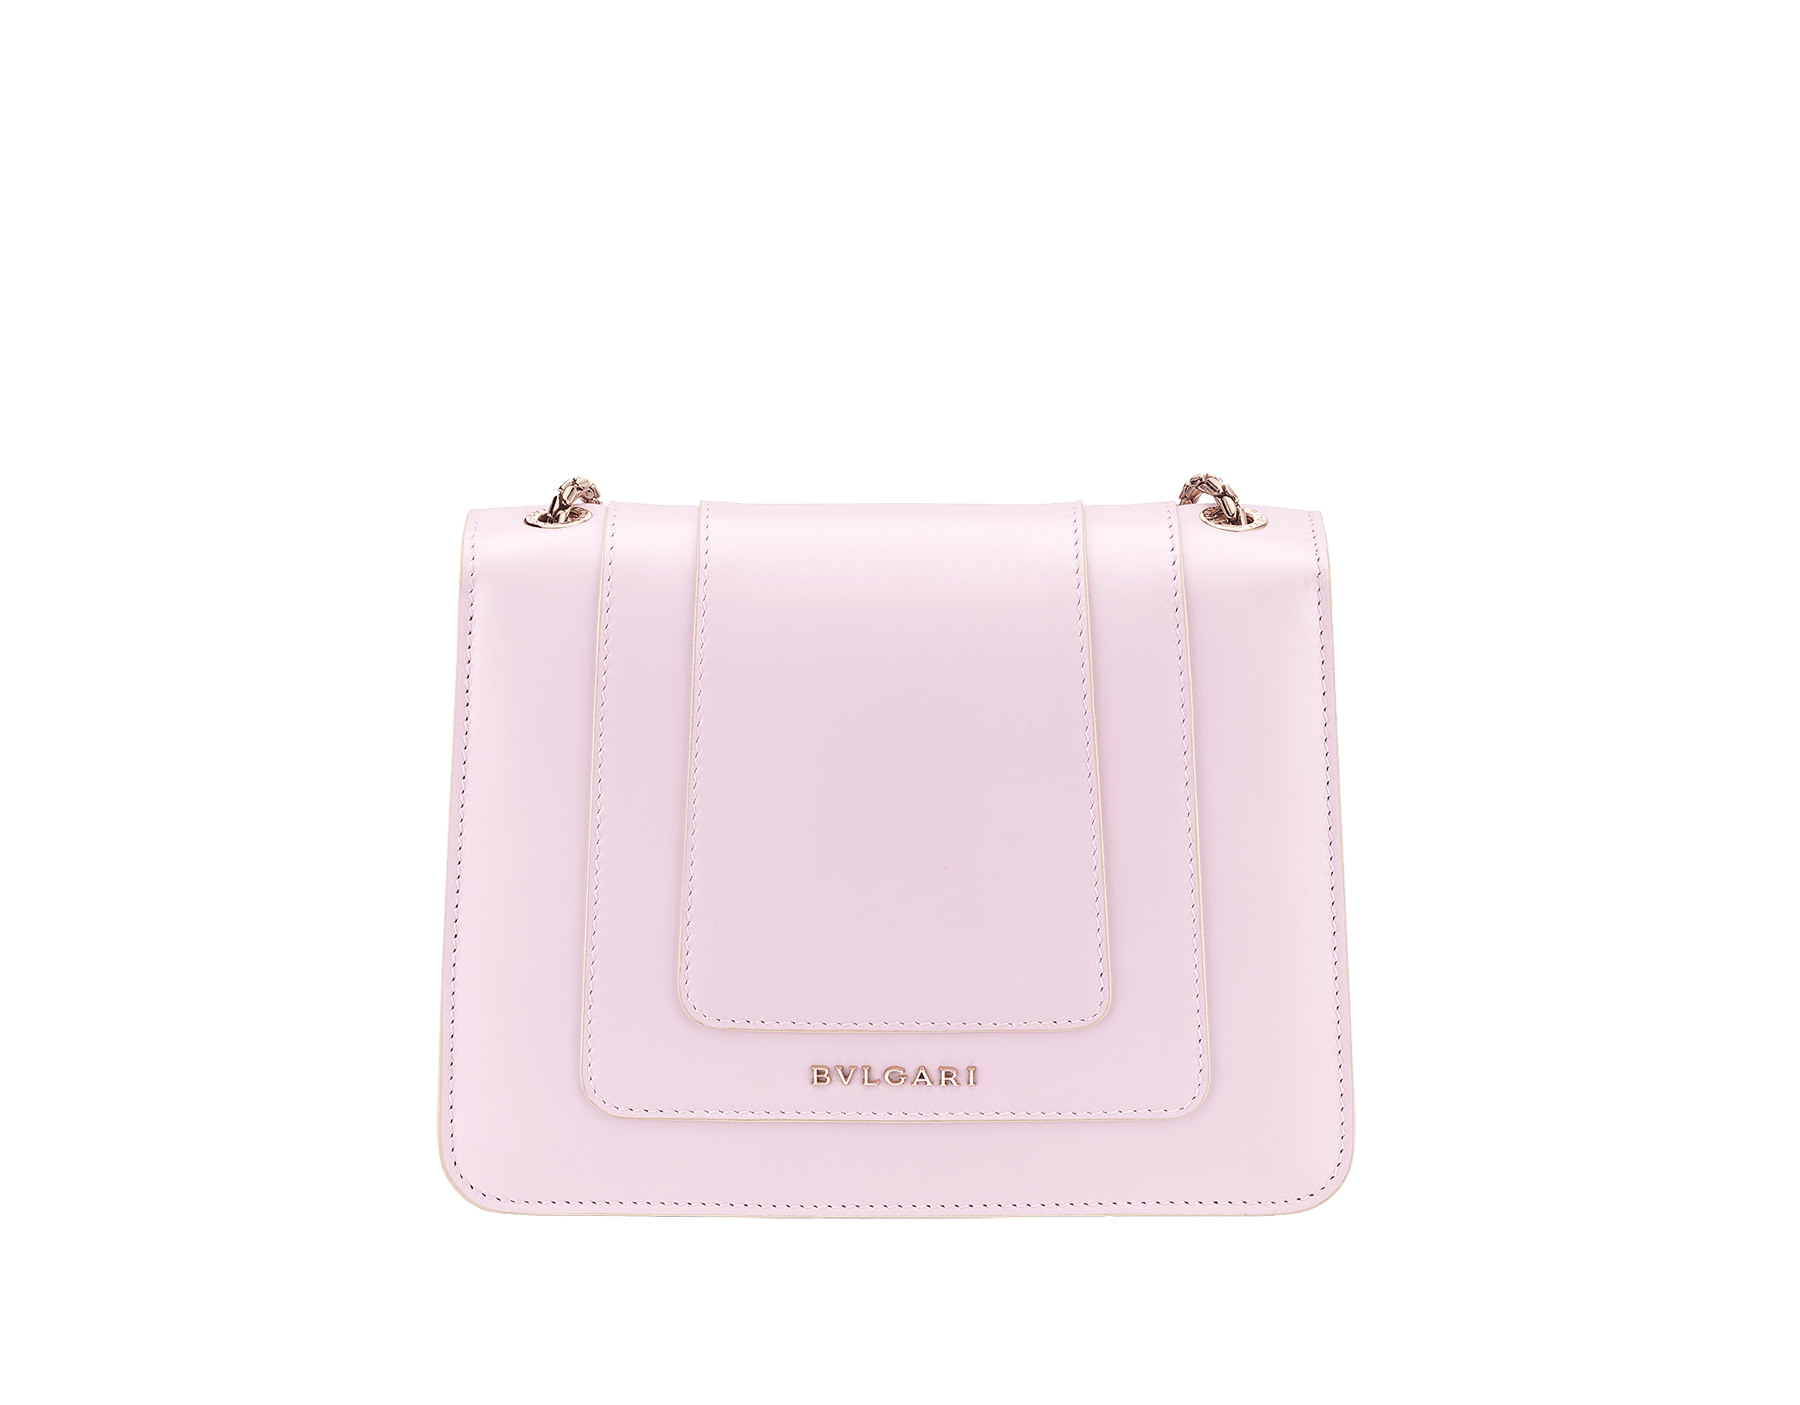 Serpenti Forever crossbody bag in sea star coral smooth calf leather body and milky opal calf leather sides. Snakehead closure in light gold plated brass decorated with milky opal and black enamel, and black onyx eyes. 422-BCLa image 3